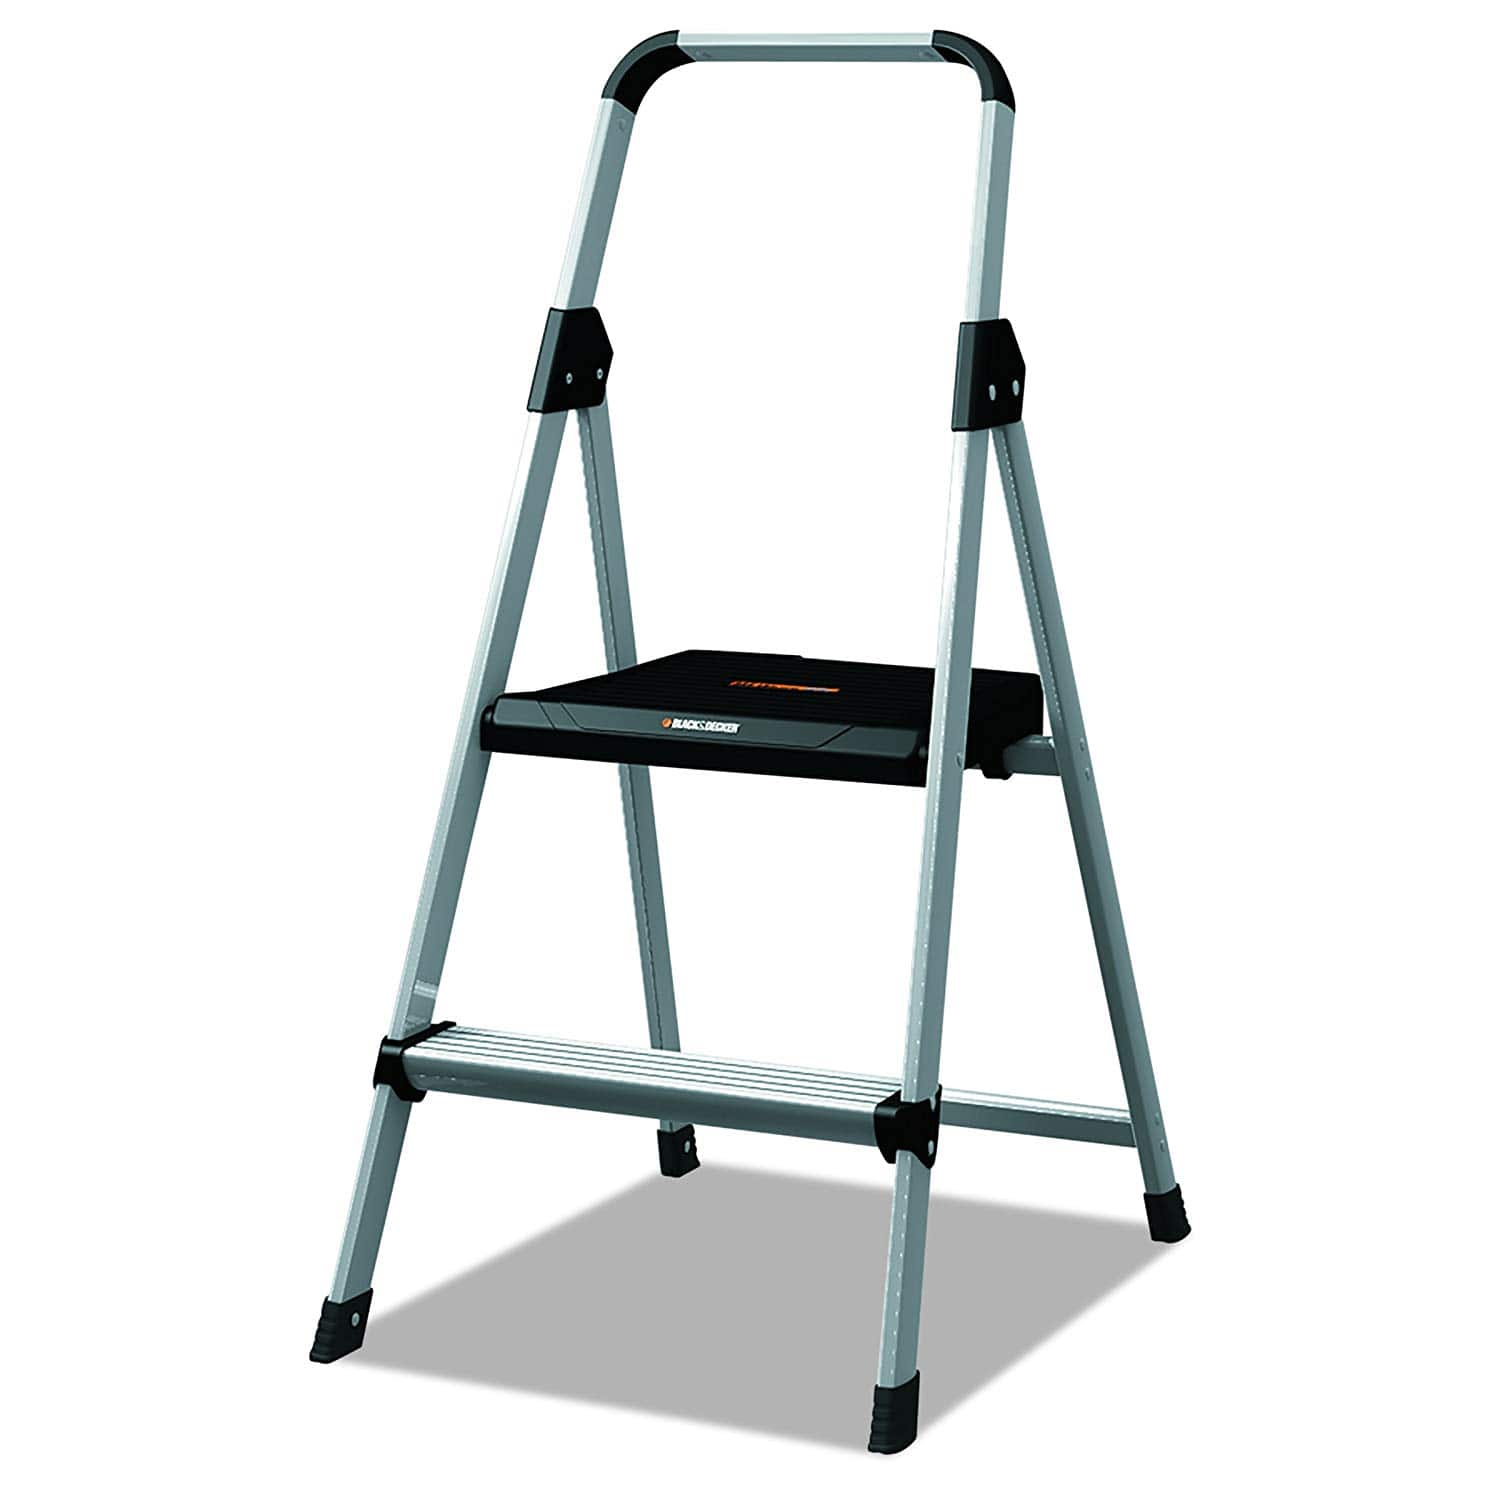 Step Stool at Woot $39.99